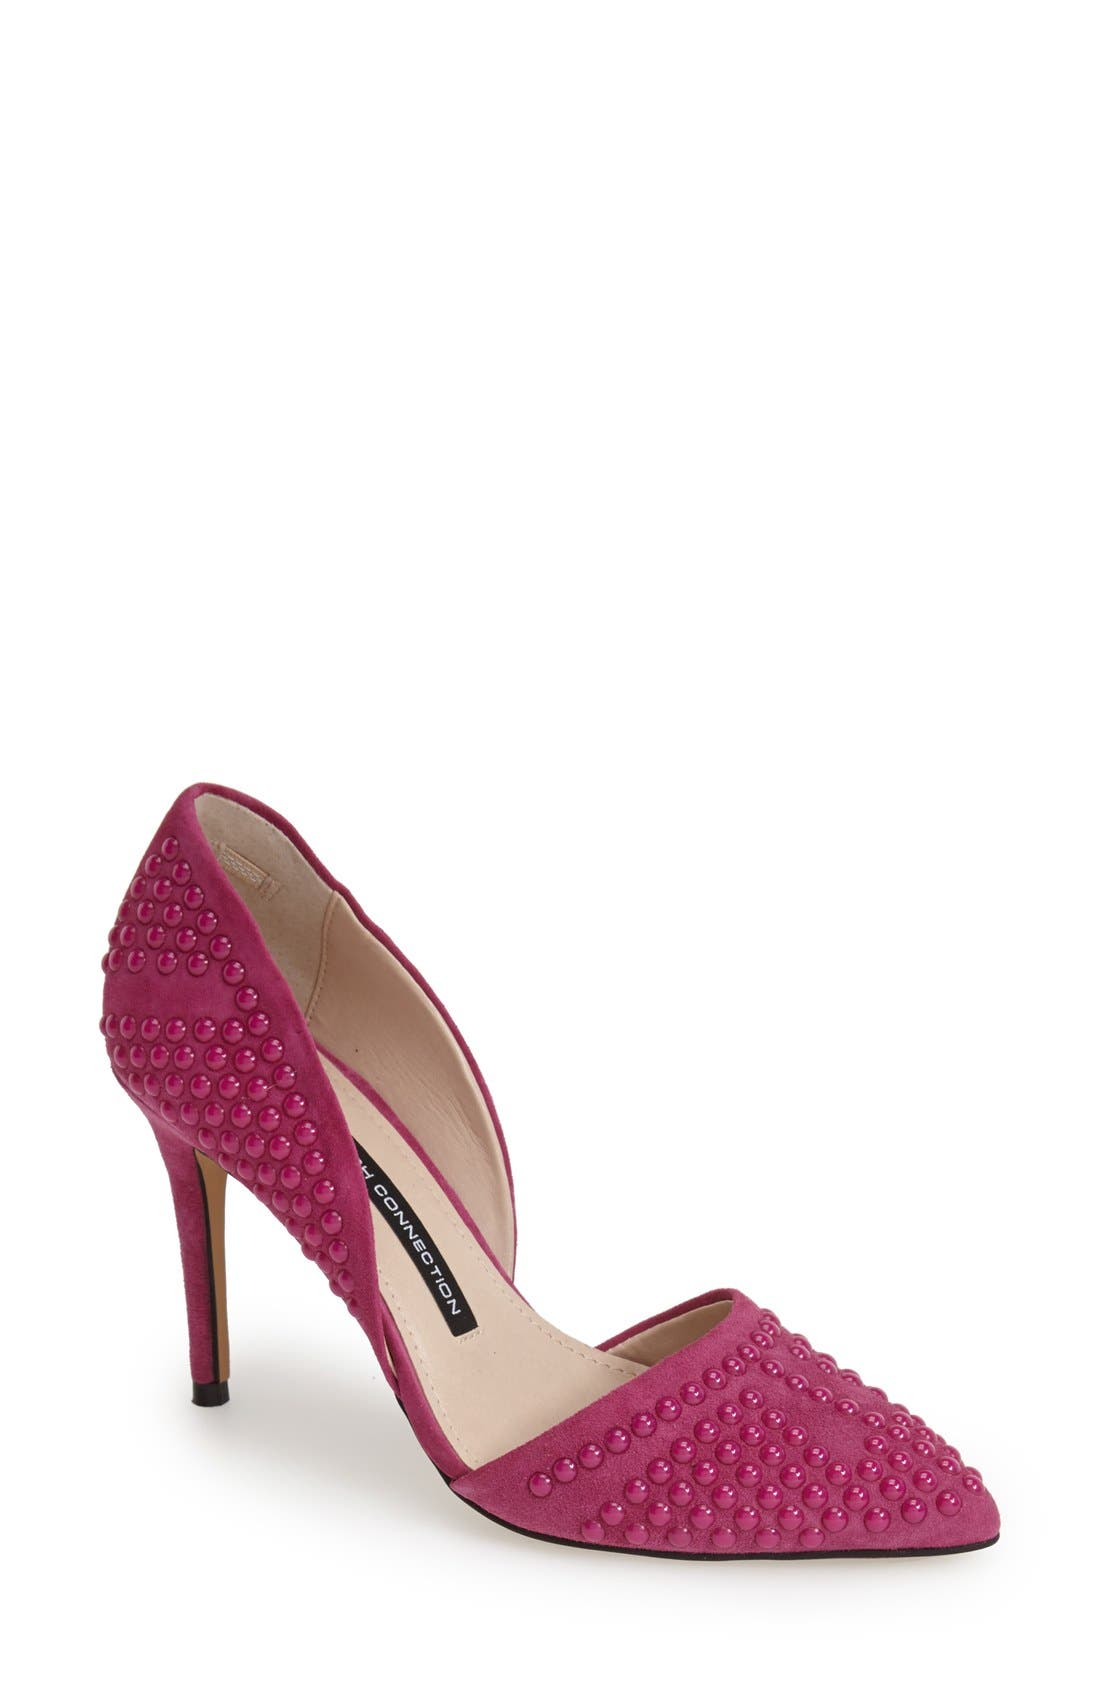 Alternate Image 1 Selected - French Connection 'Ellis' Studded Pointy Toe Pump (Women)